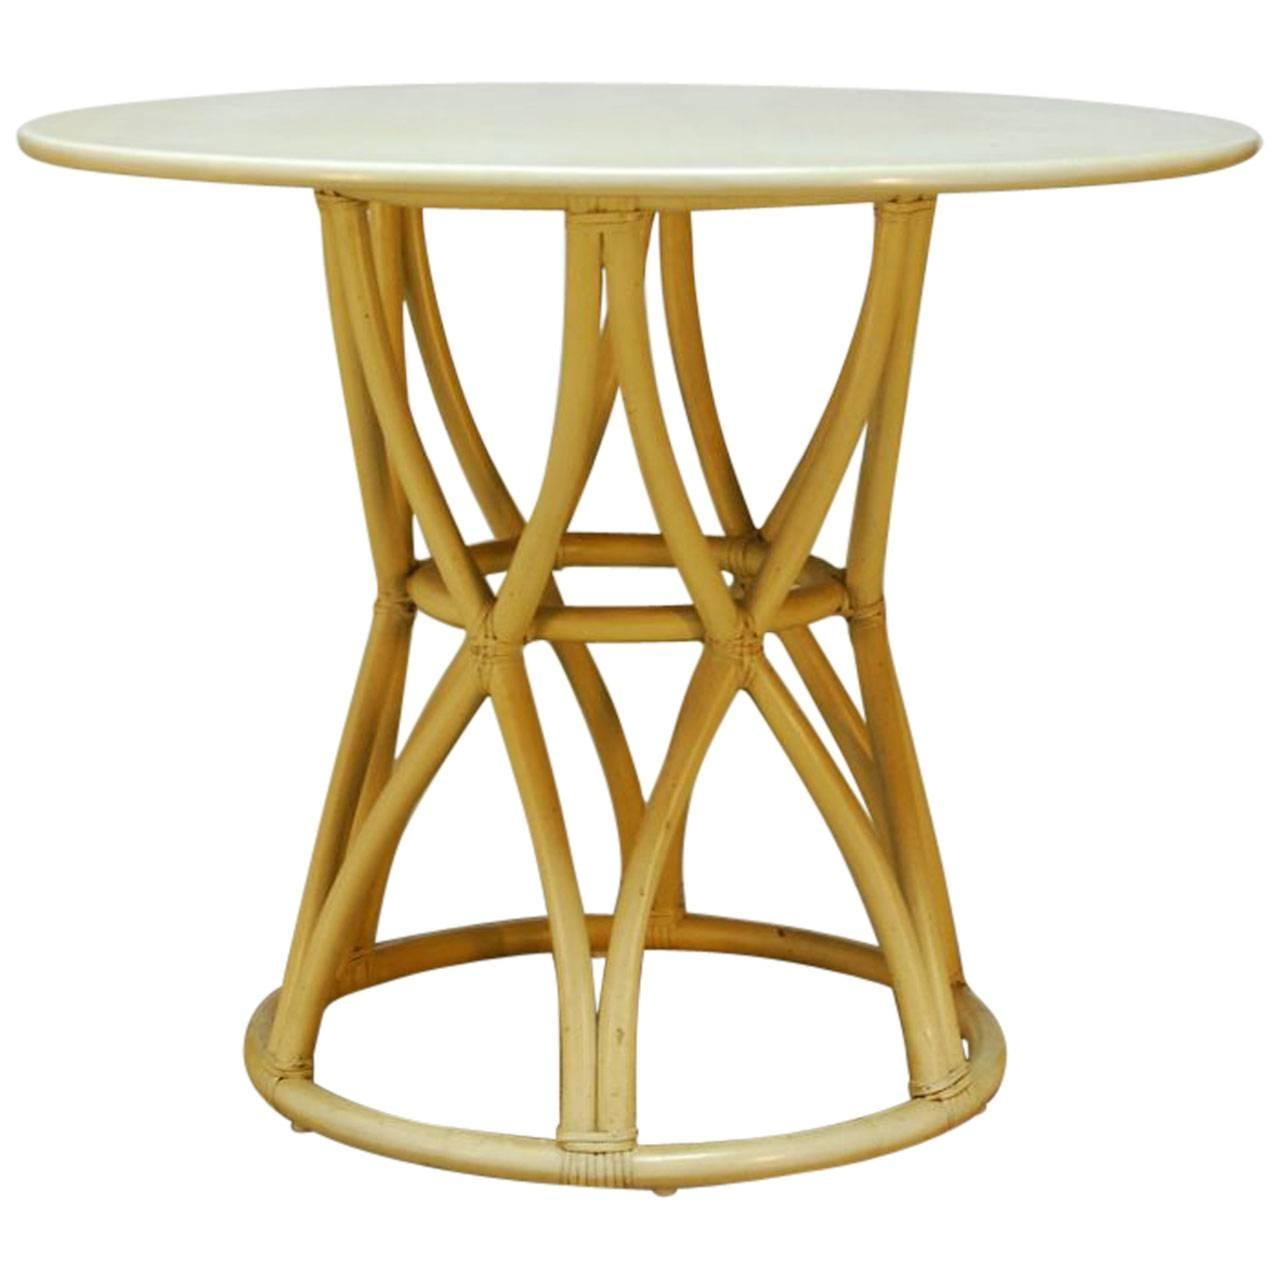 Mcguire round bamboo cage dining table at 1stdibs